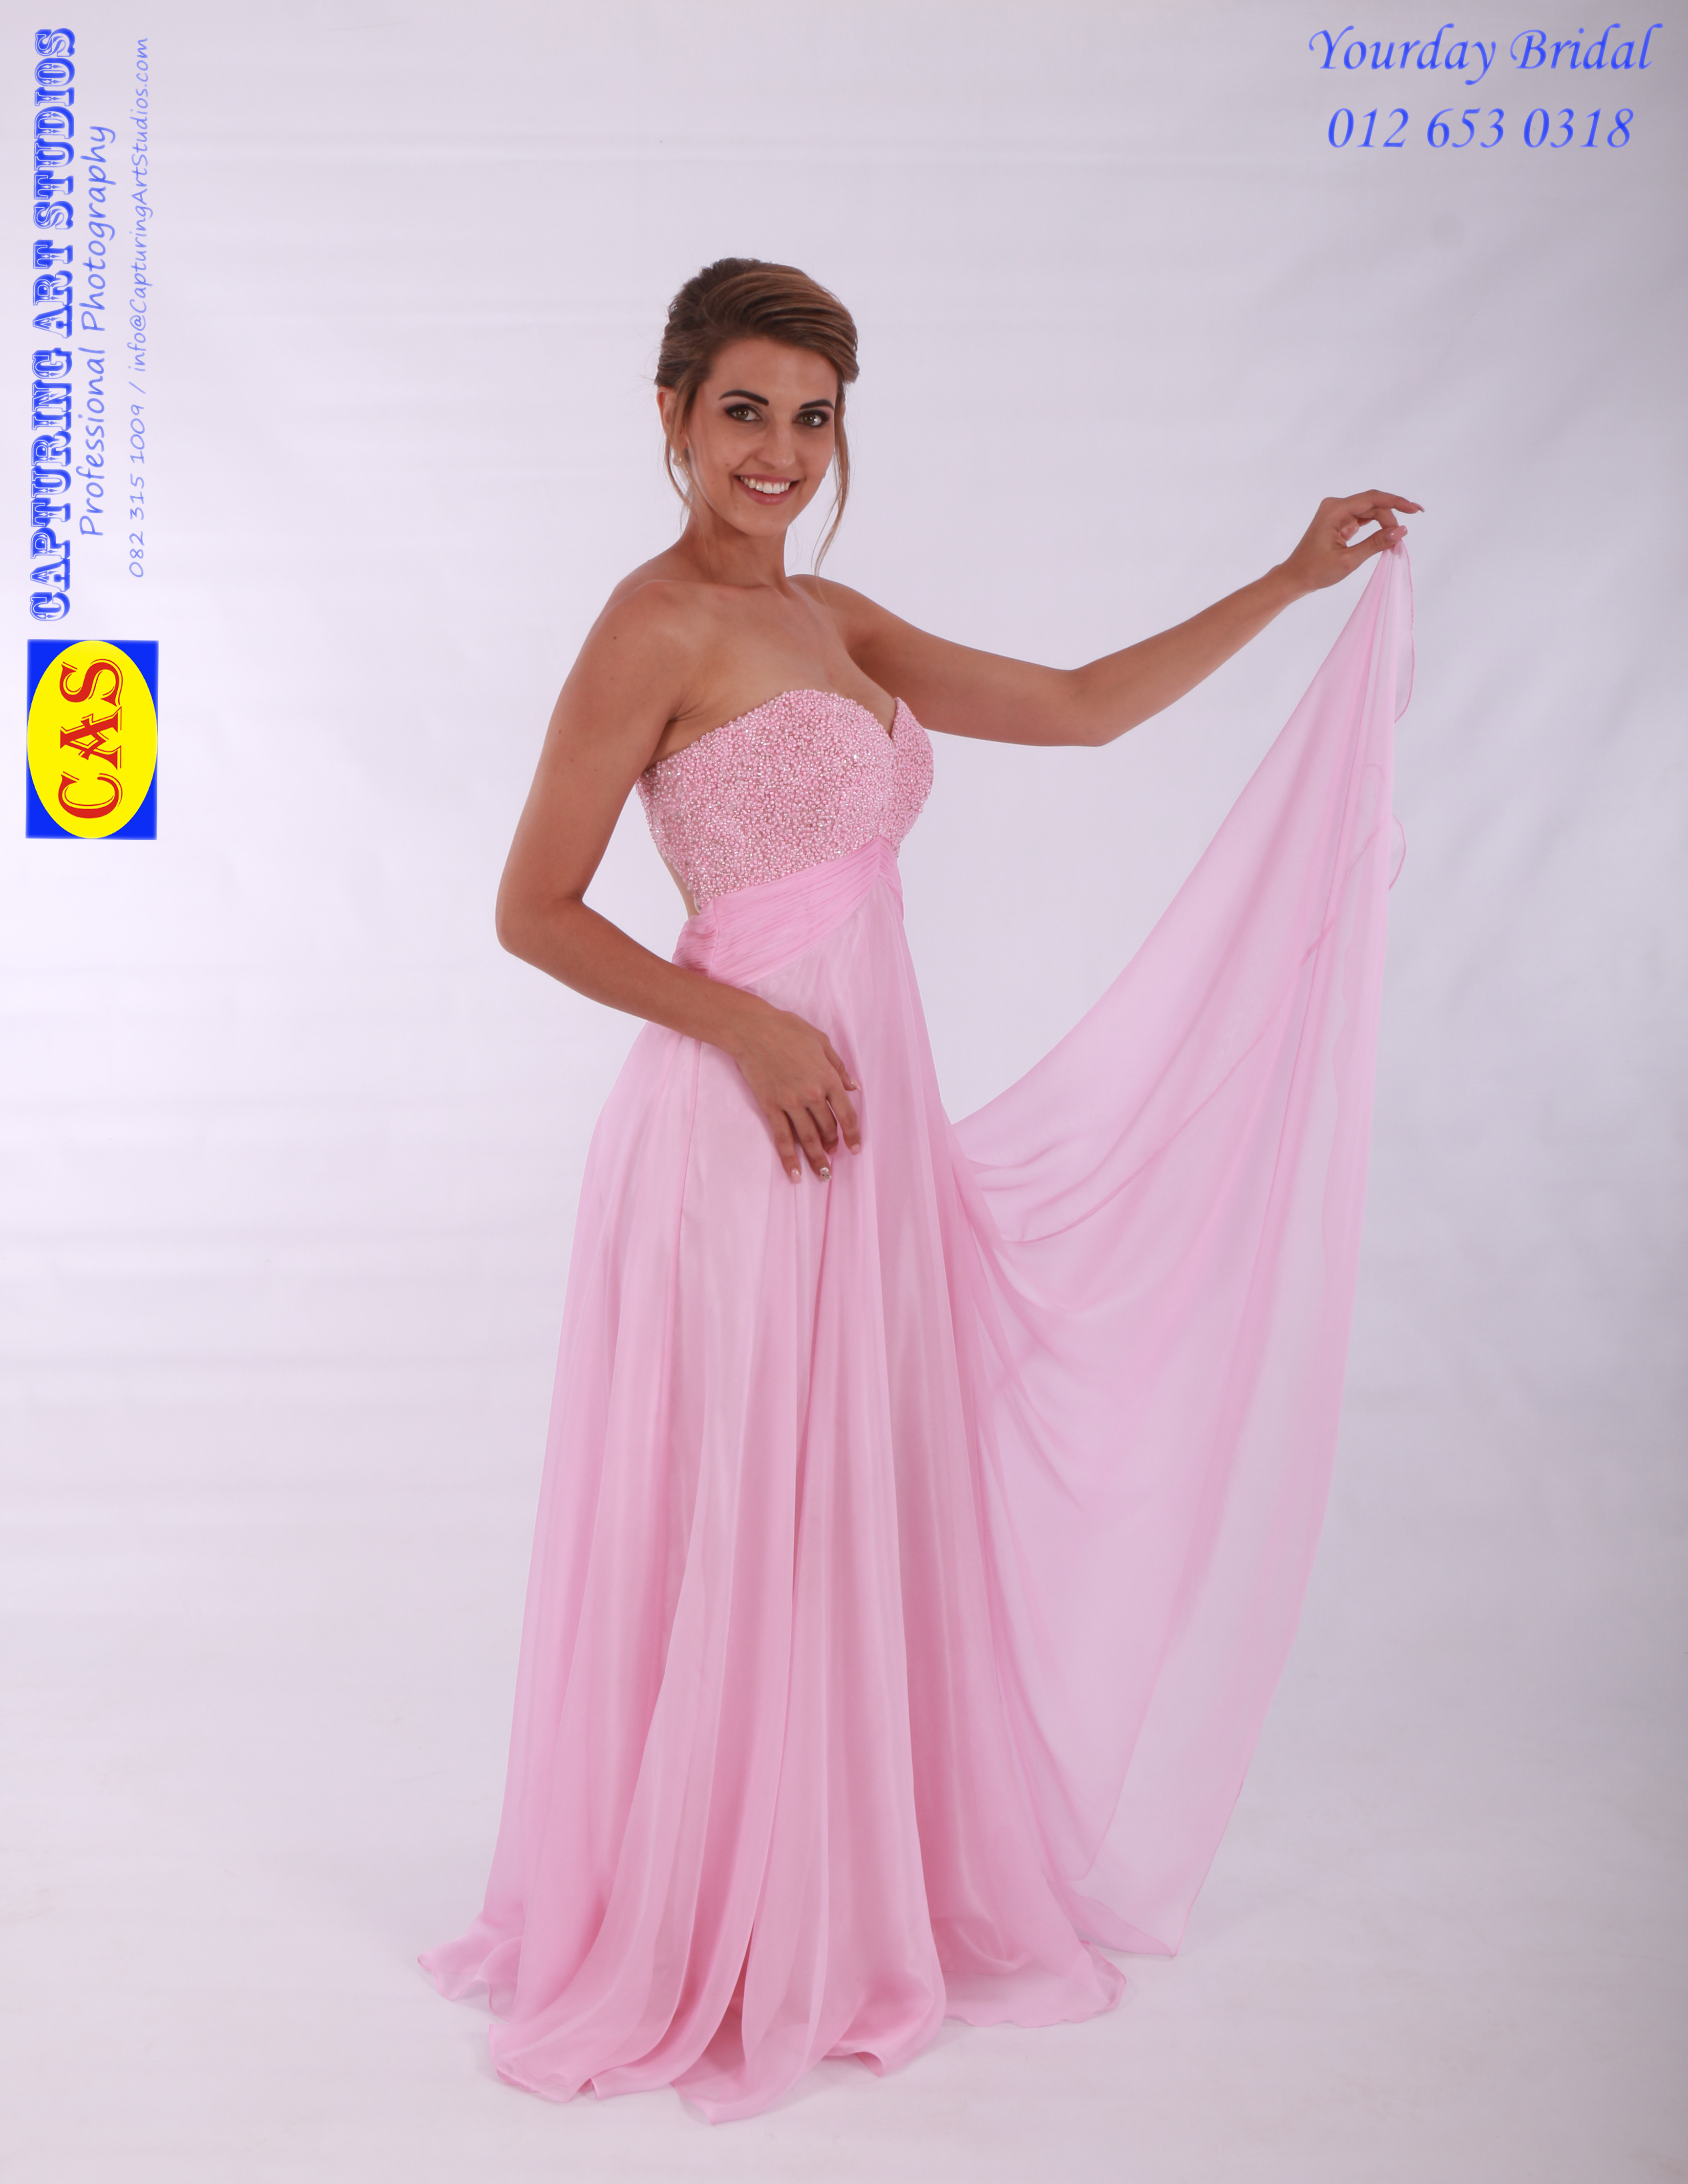 md59763-matric-farewelldance-dresses--matriekafskeidrokke-